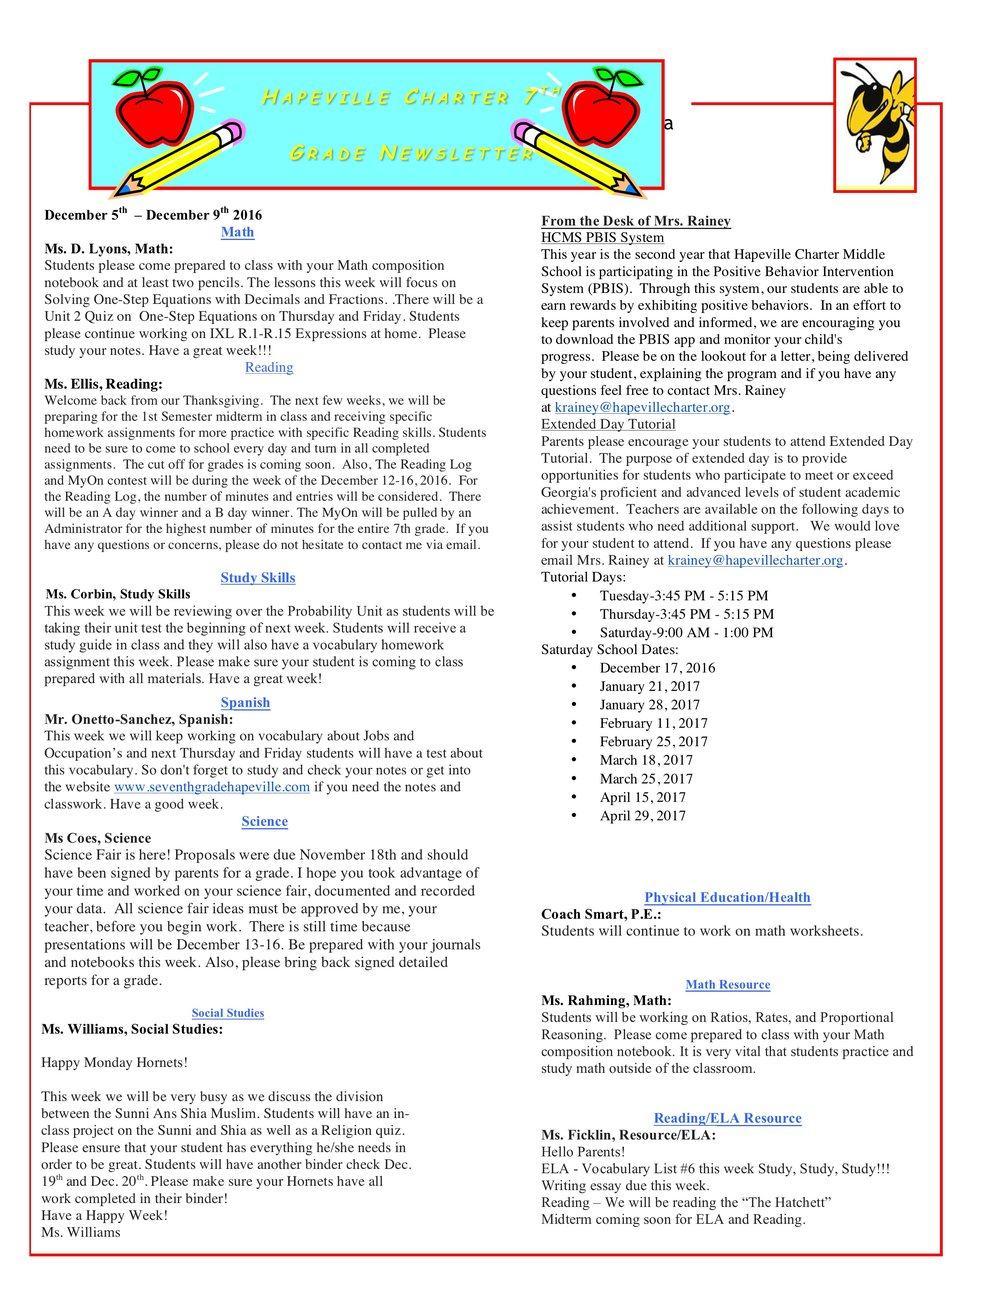 Newsletter Image7th Grade Newsletter 12.5.2016 .jpeg